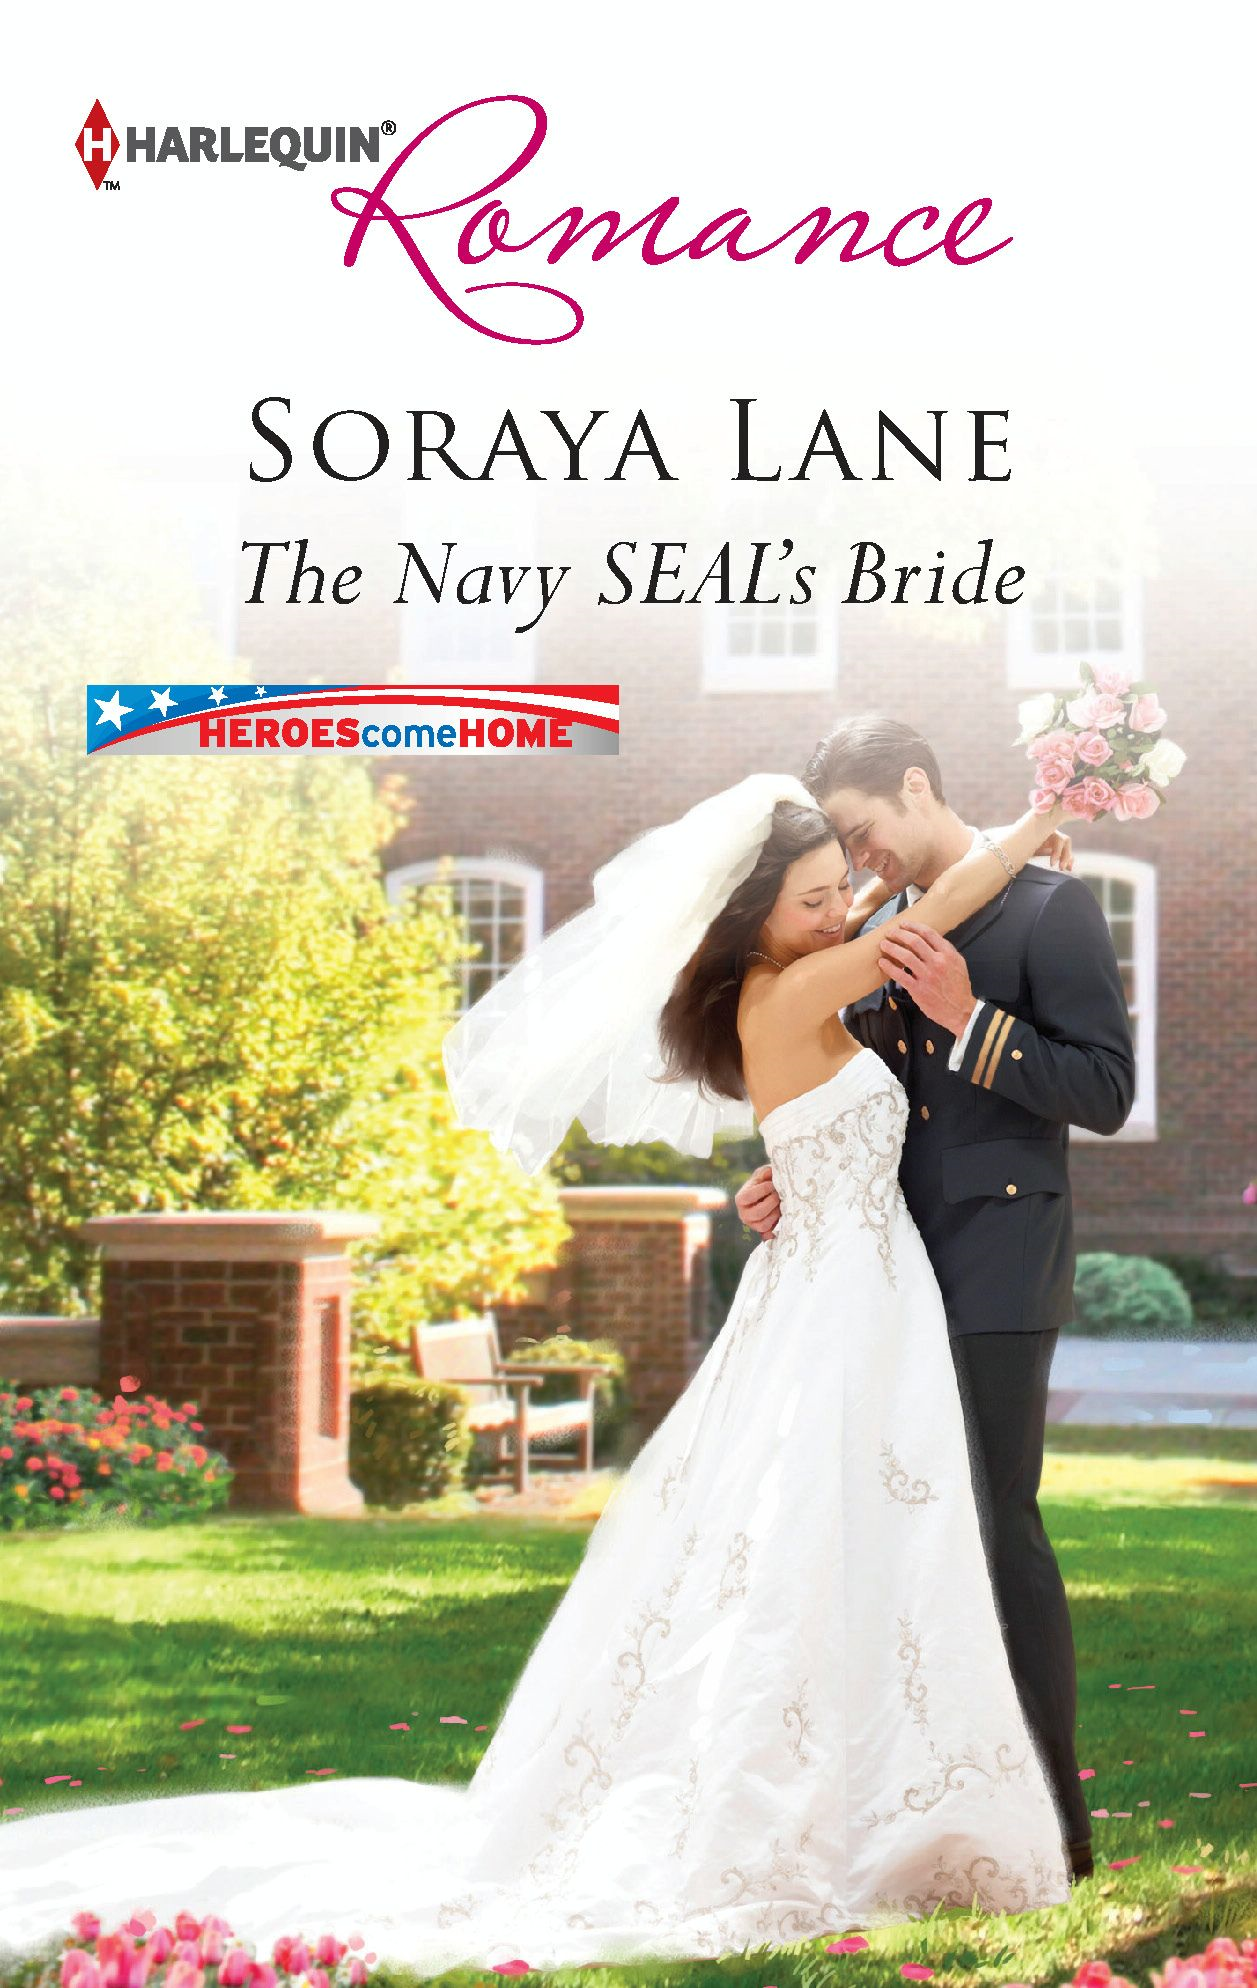 The Navy SEAL's Bride